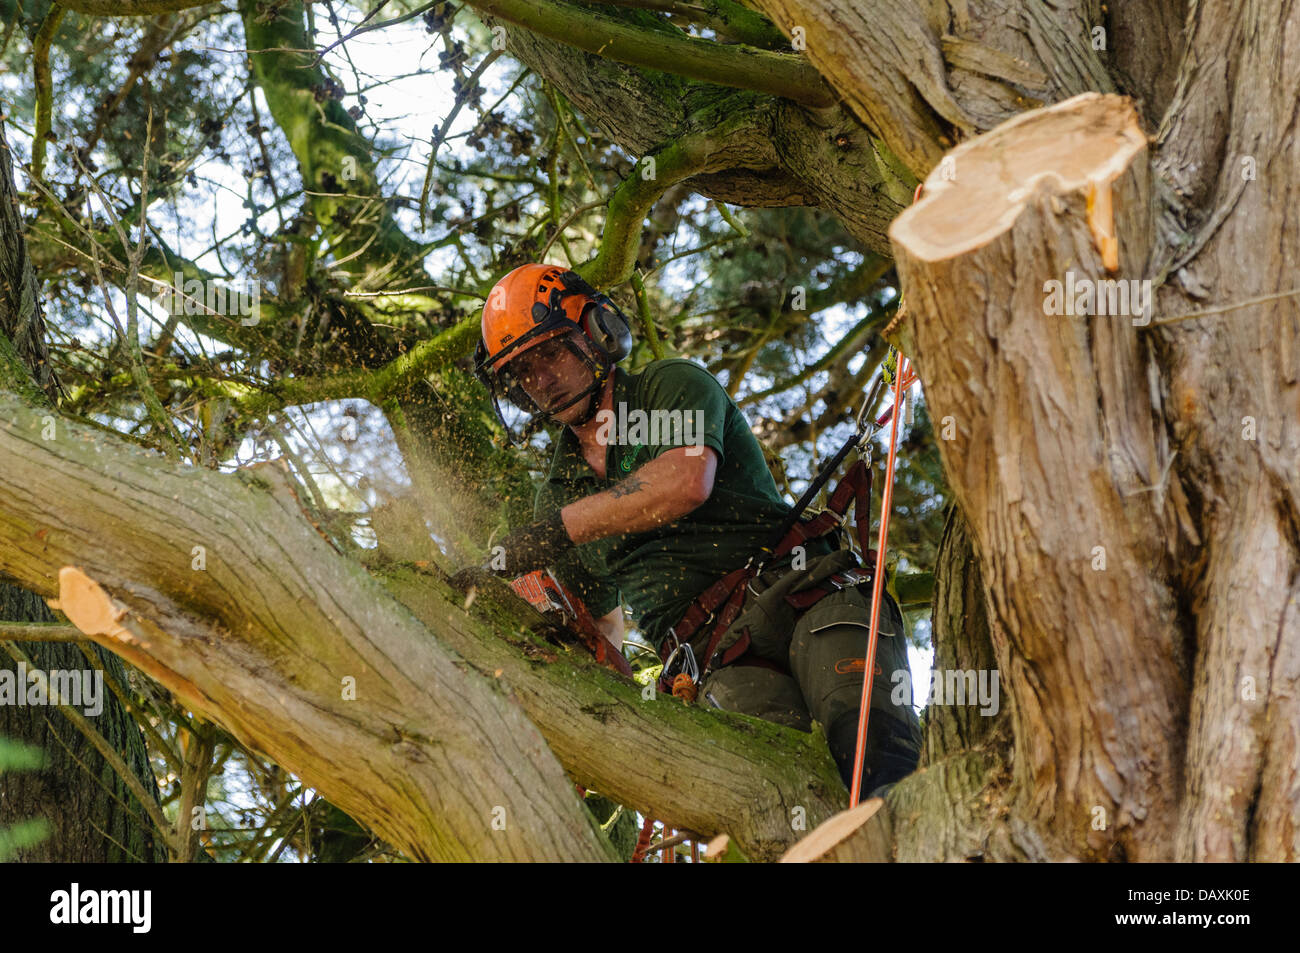 A tree surgeon uses a chainsaw to cut branches from a tree - Stock Image